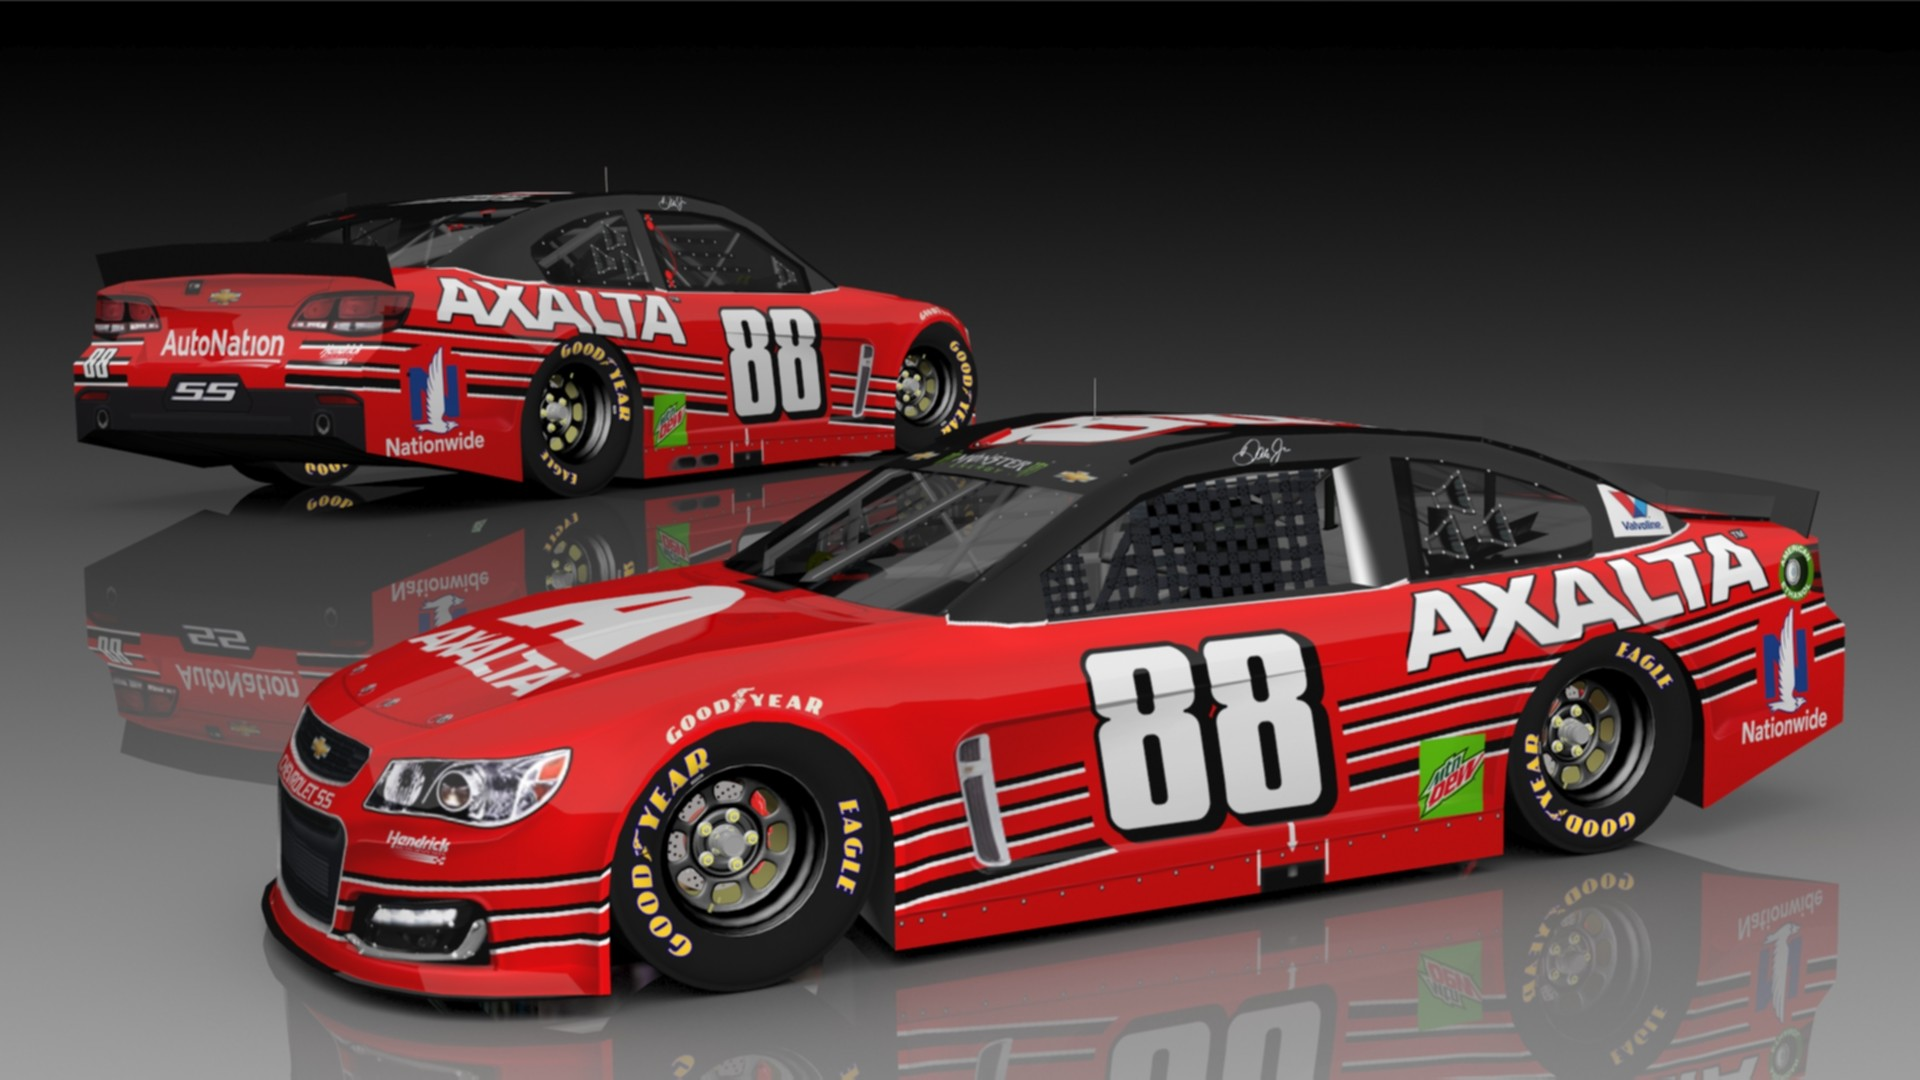 Dale Earnhardt Wallpaper 63 Image Collections Of: Dale Earnhardt Jr Wallpapers (74+ Pictures